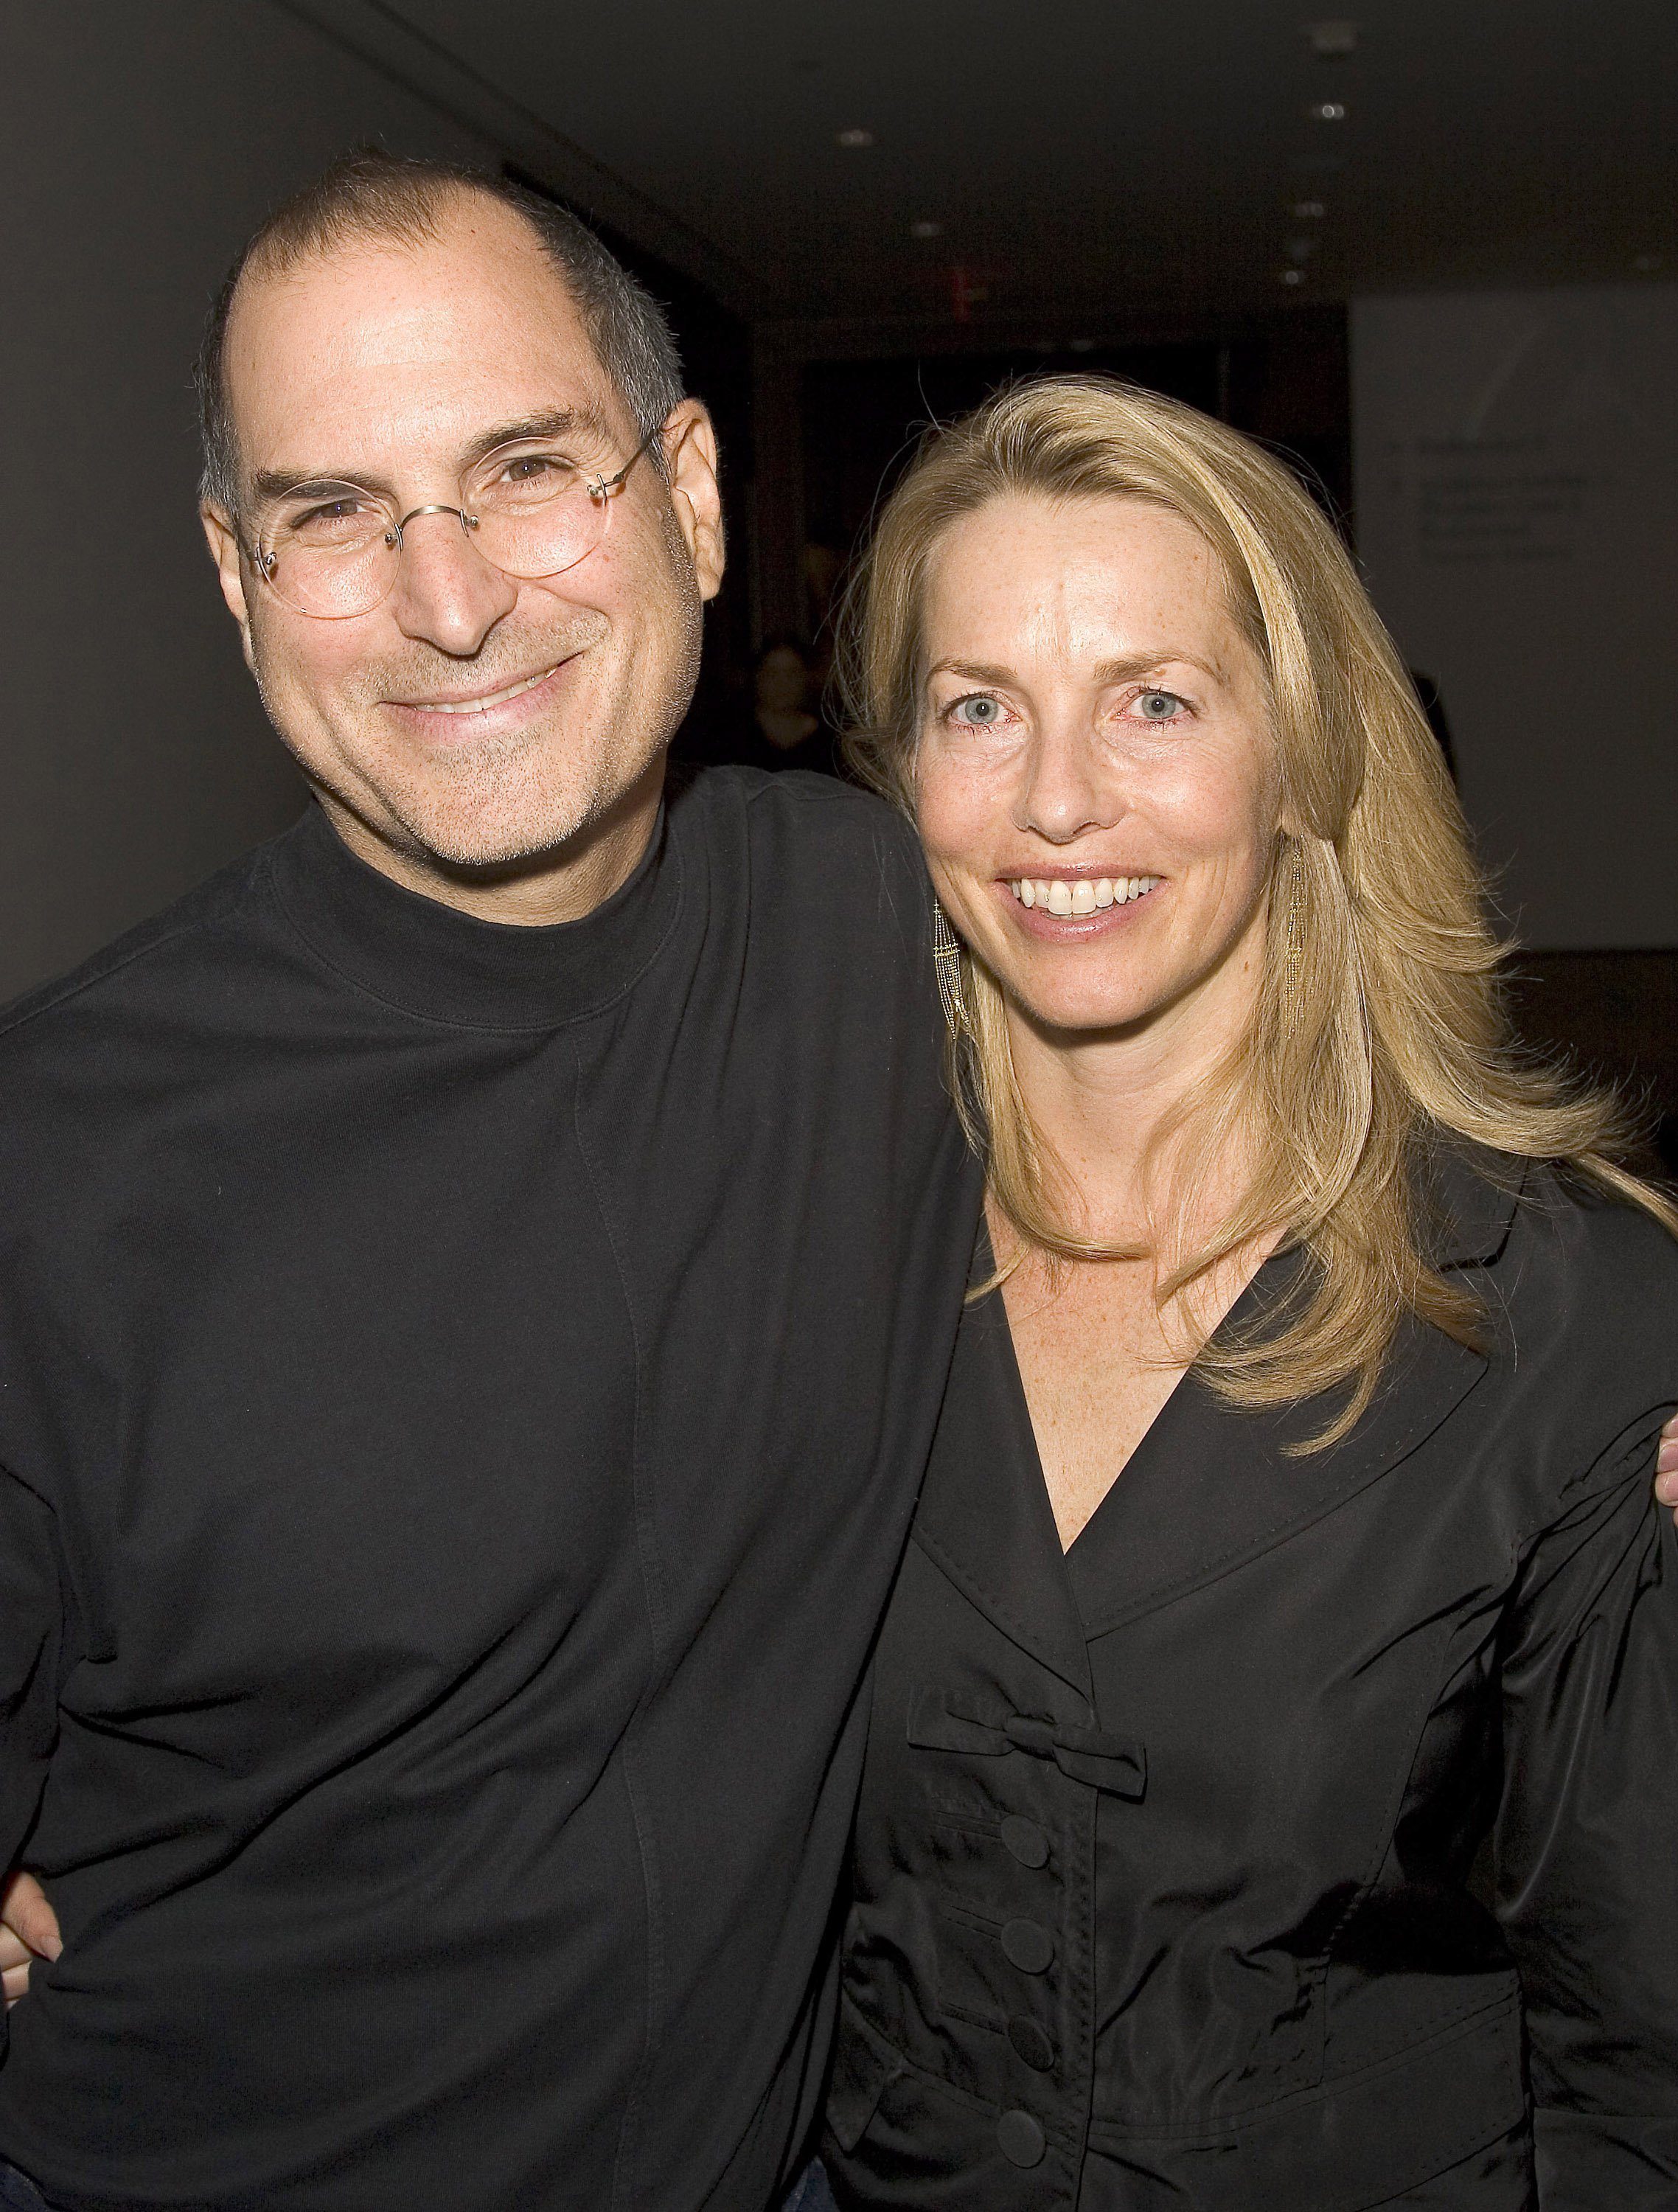 Steve Jobs and Laurene Powell during Pixar Exhibit Launch at The Museum of Modern Art on December 13, 2005 | Photo: Getty Images